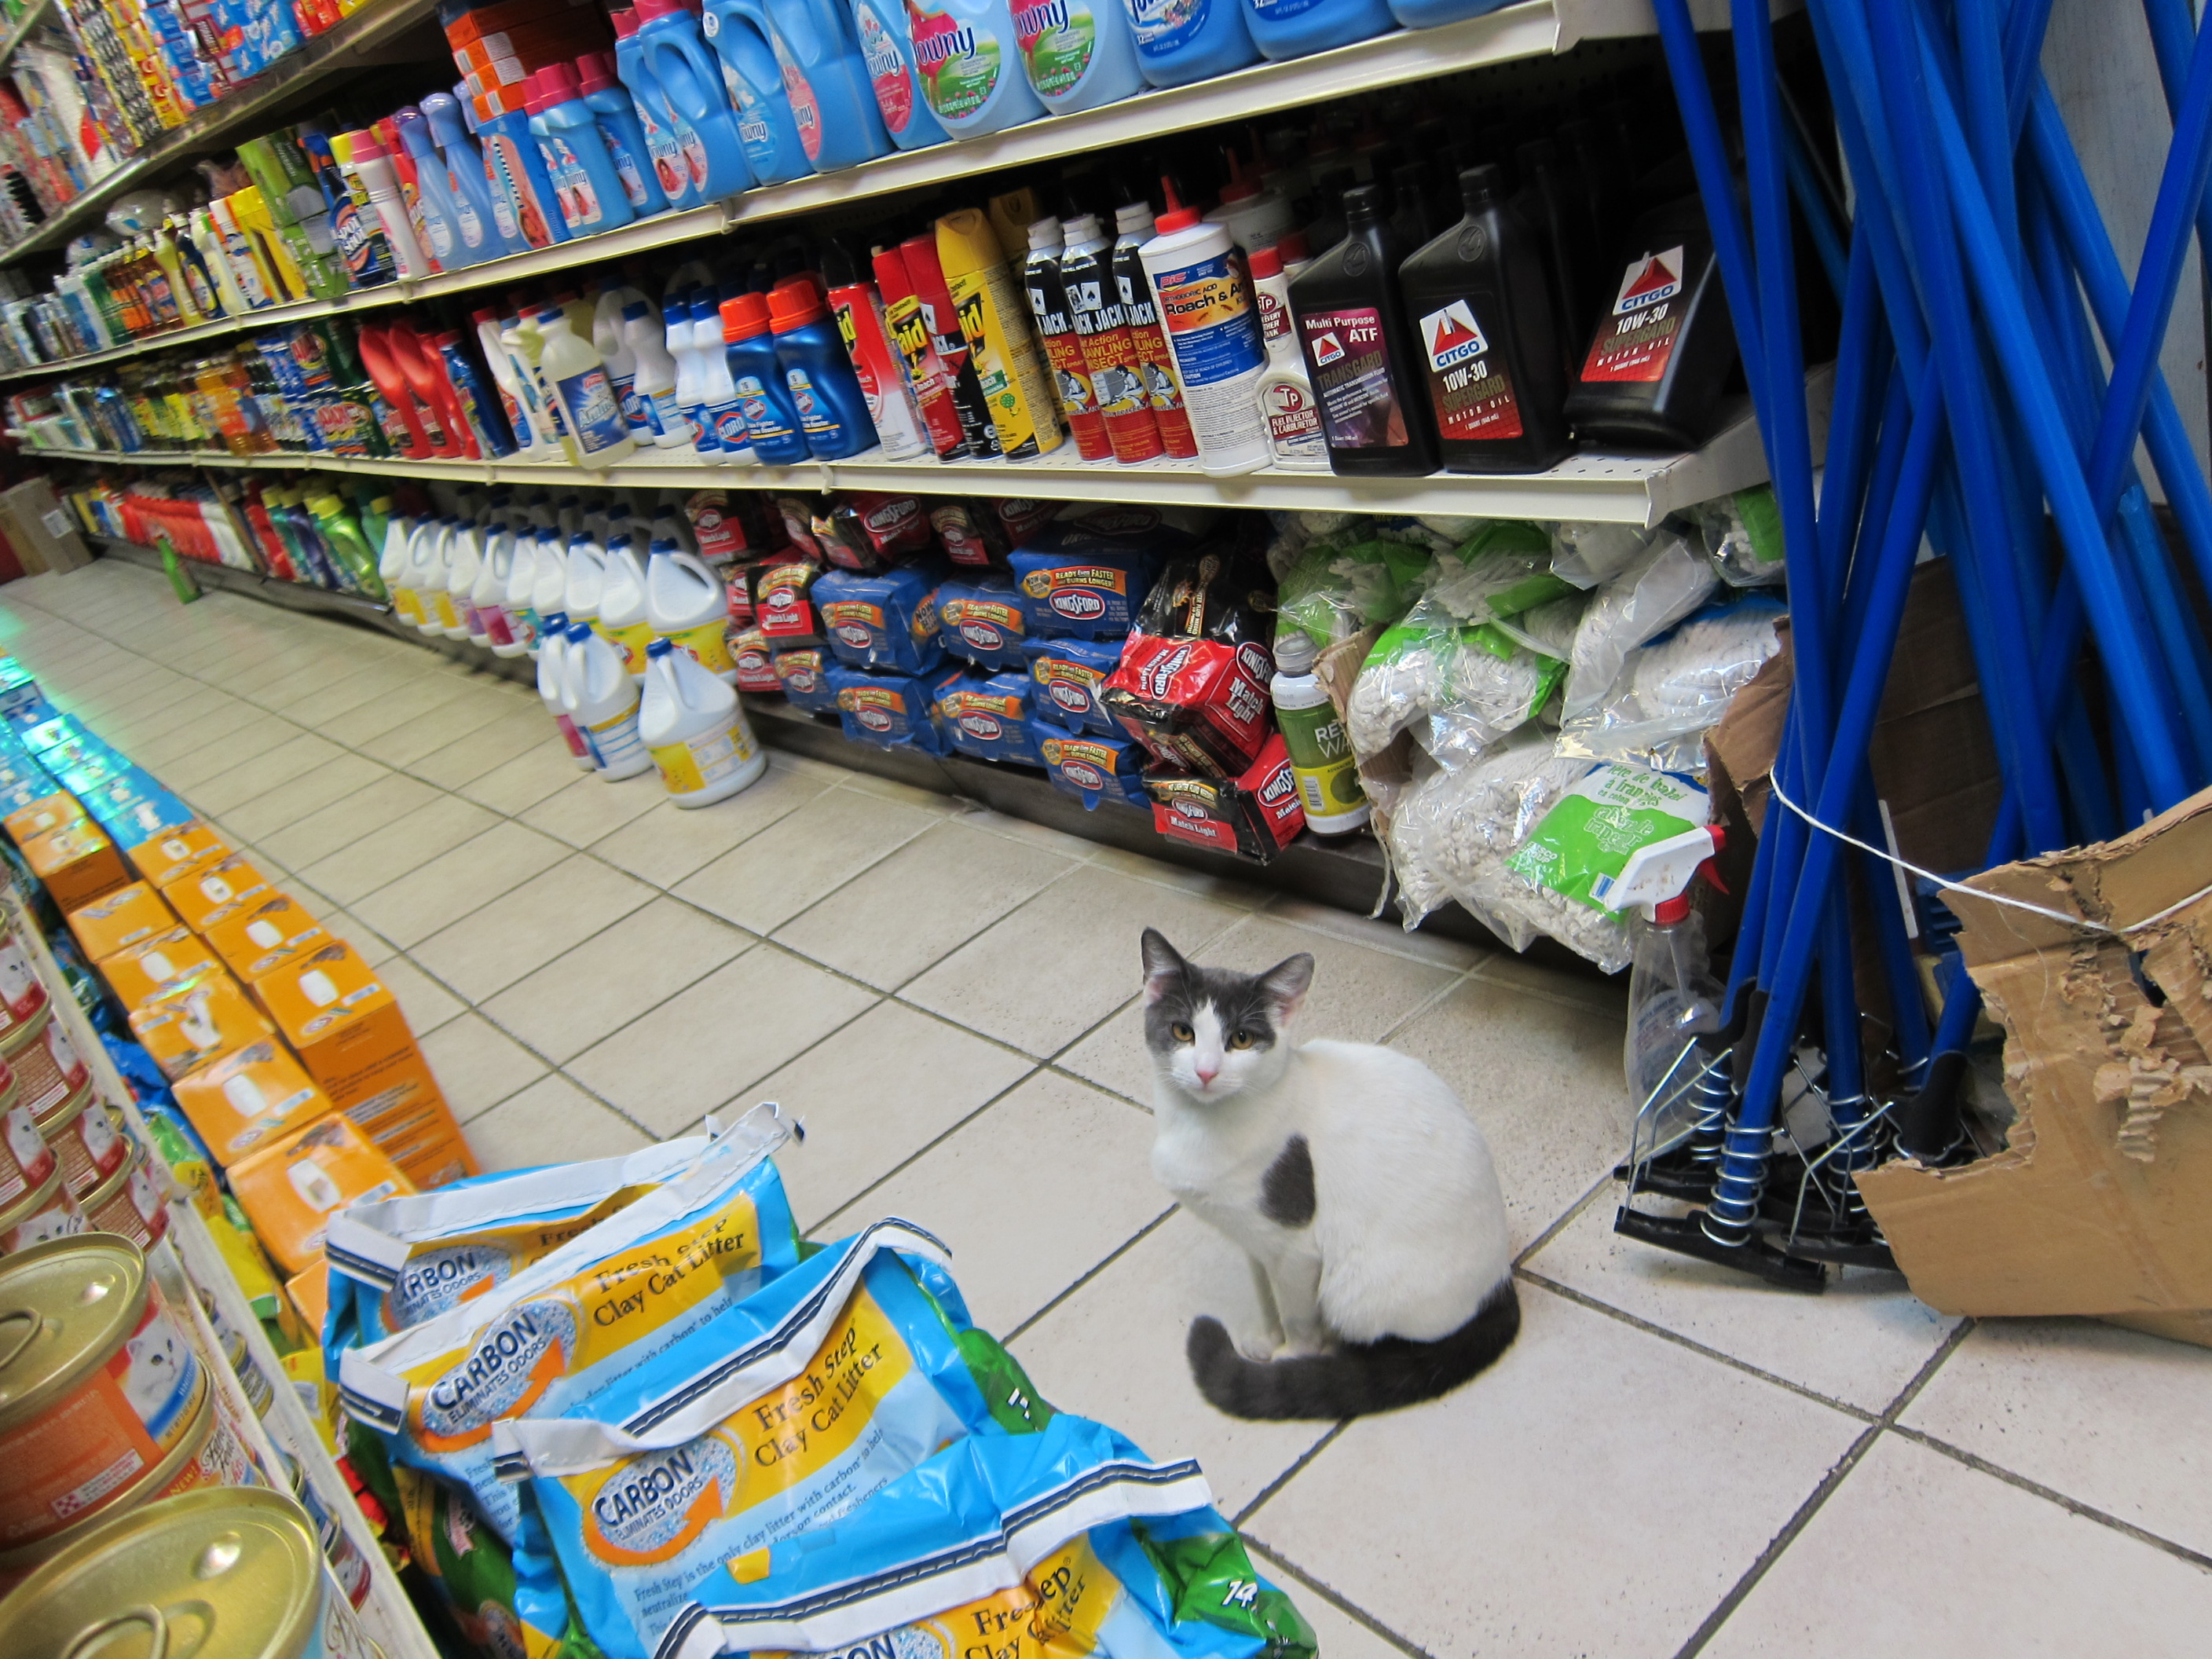 Bodega Cat by Seth Werkheiser via Flickr